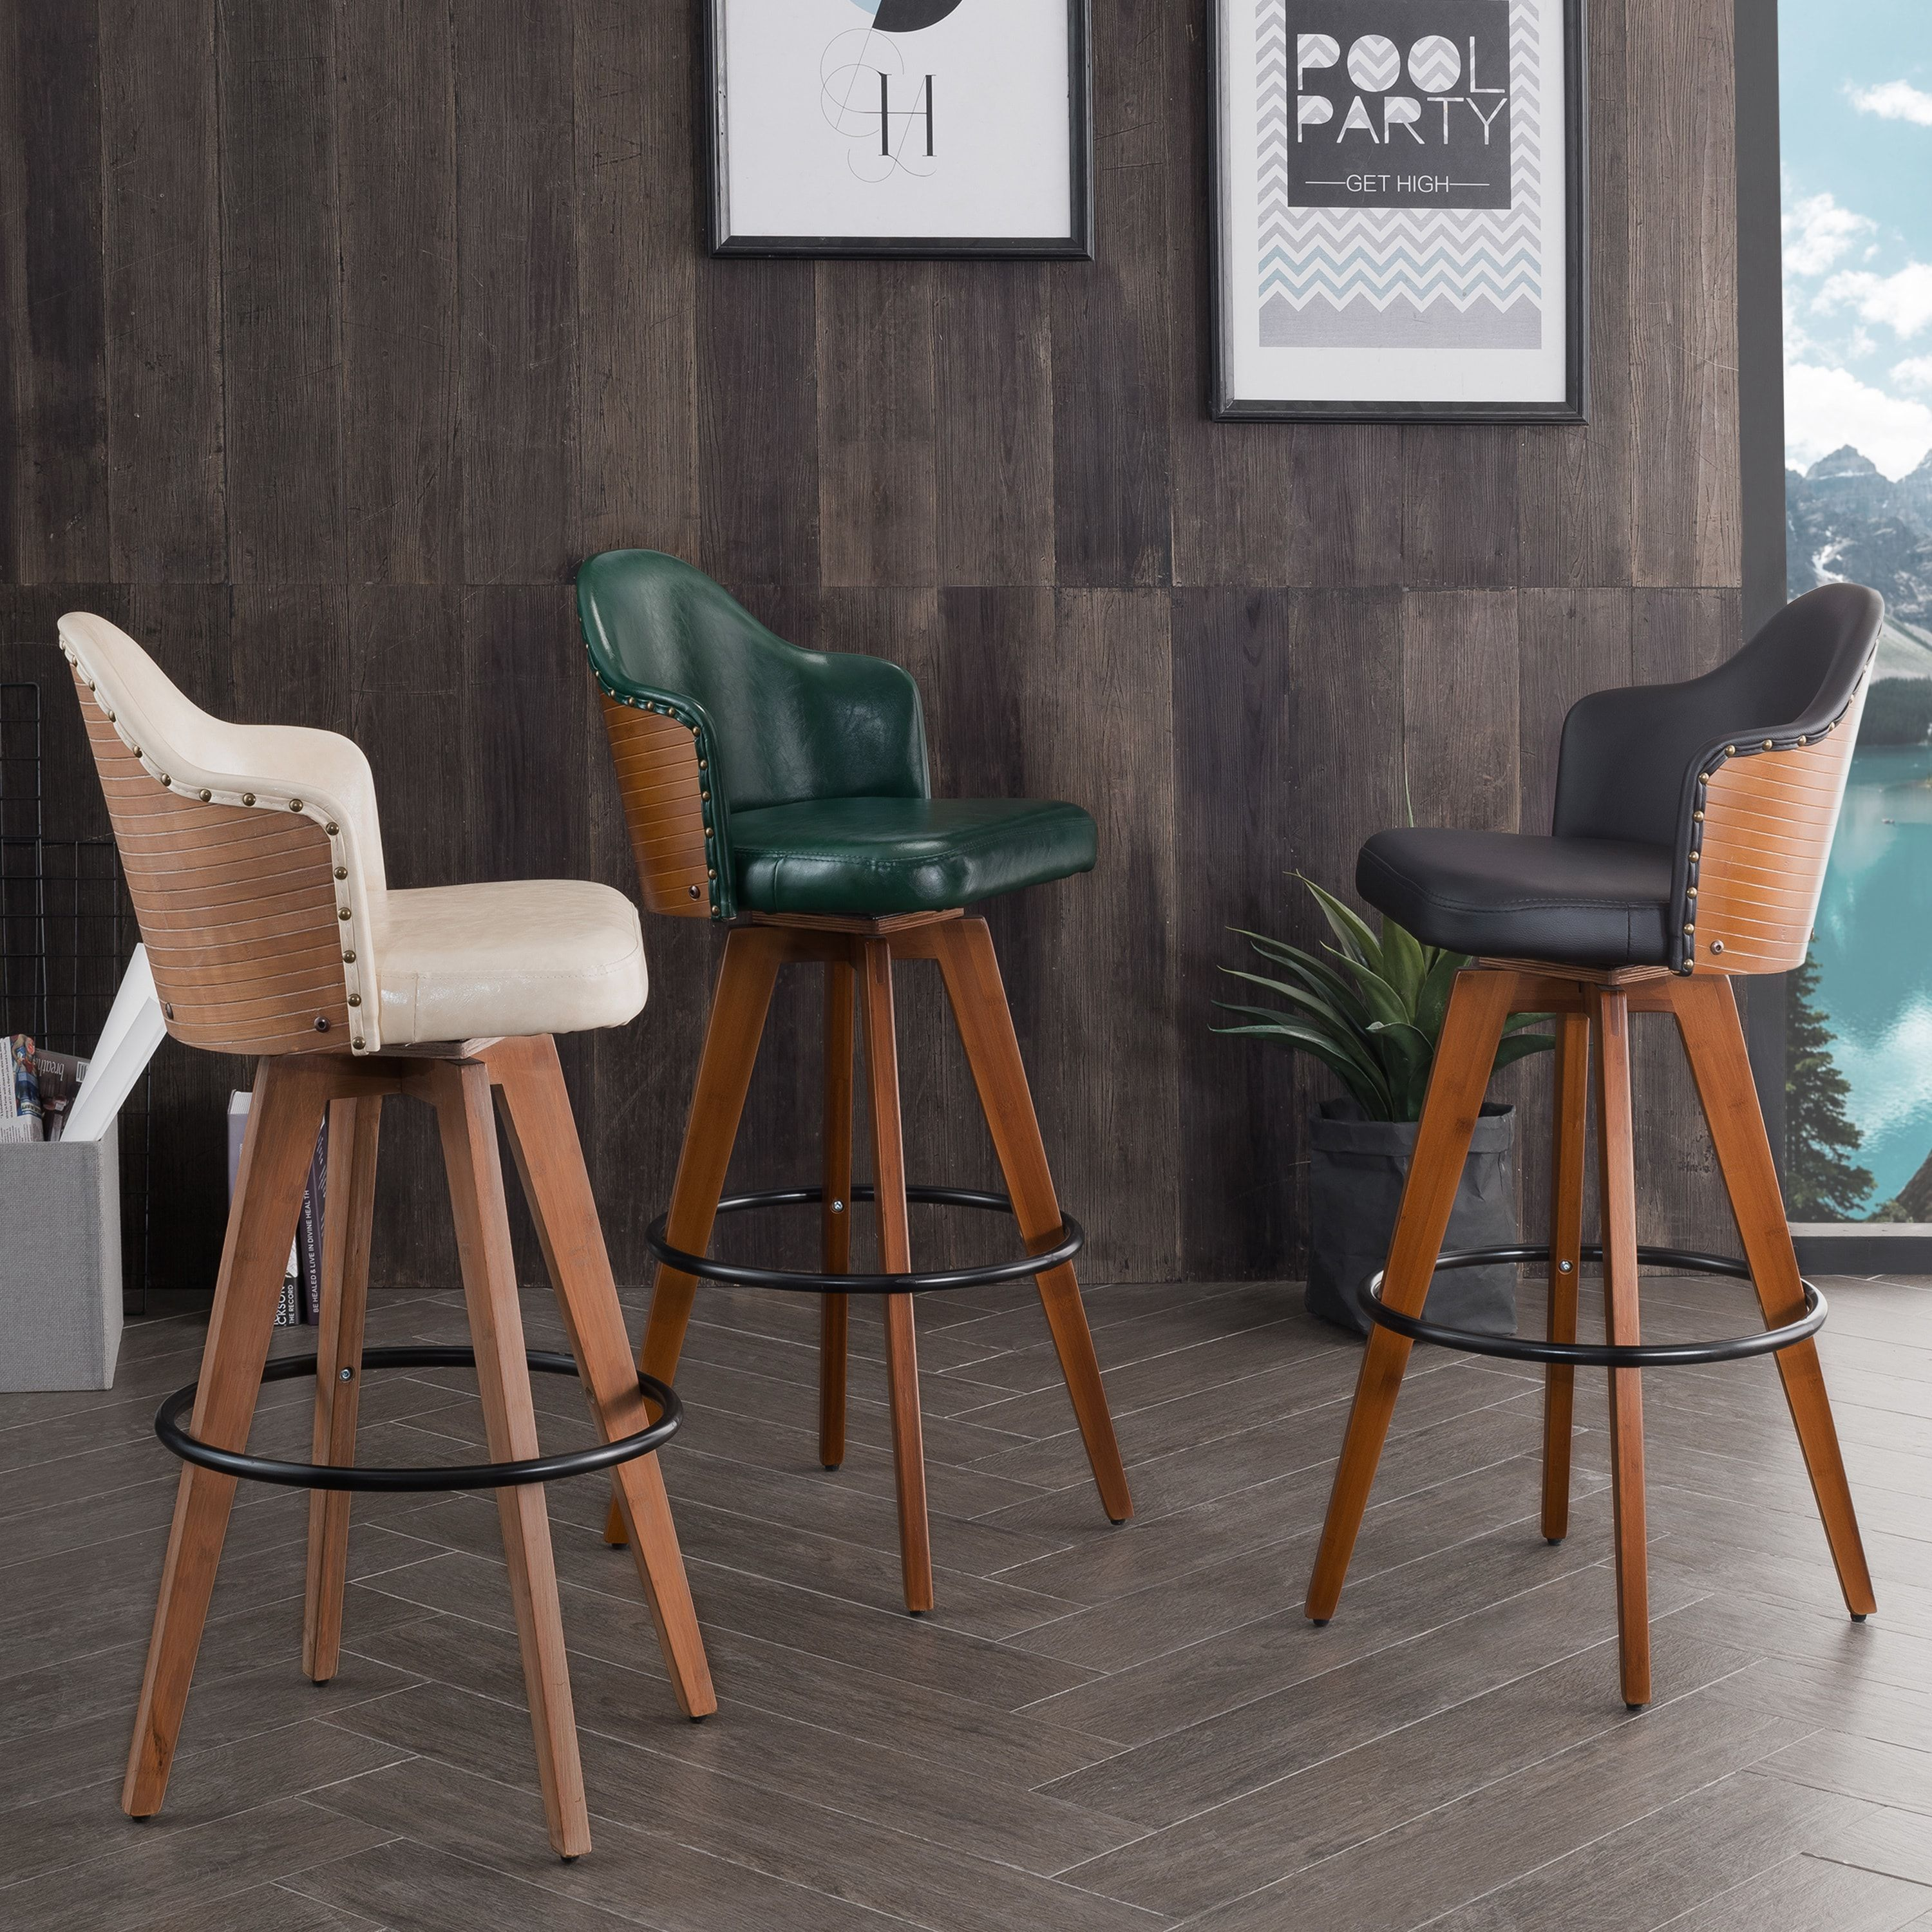 bamboo purchase wooden swivel cheap stools chairs padded stool metal rotating bar backs faux with kitchen